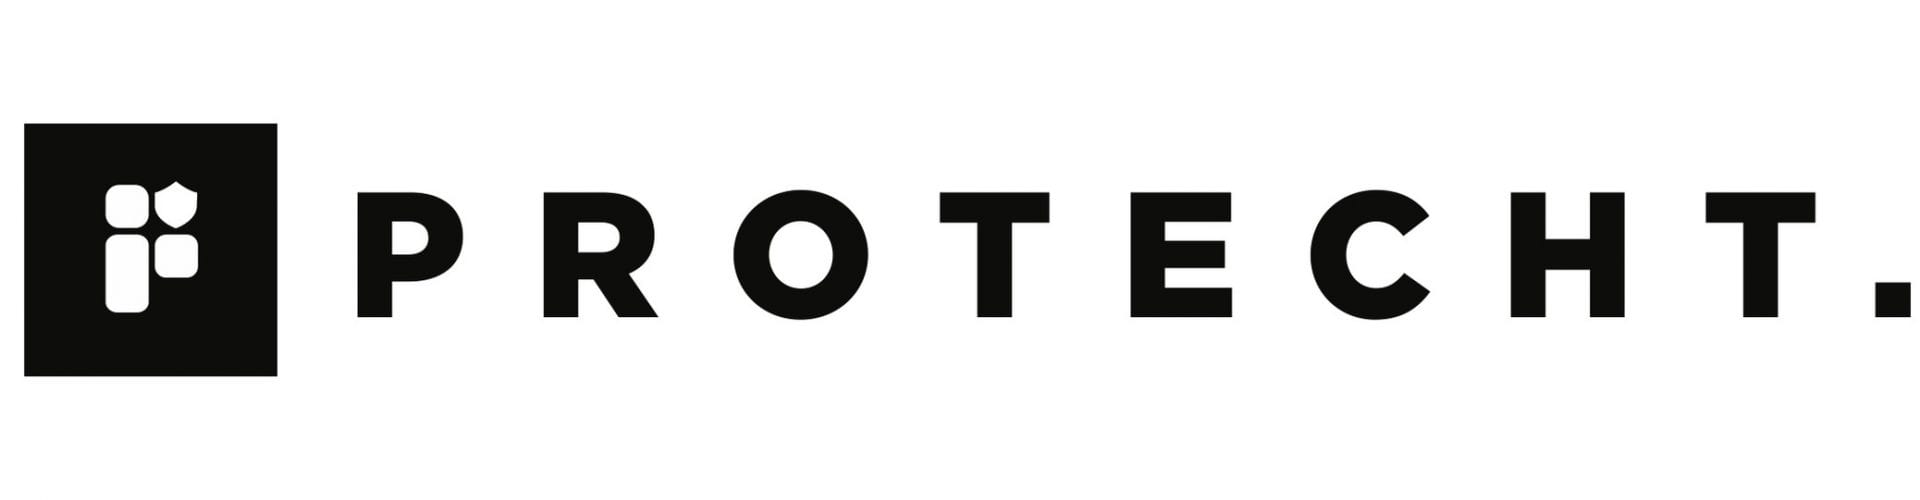 Ticket Insurance Company Protecht Appoints New Chief Product Officer